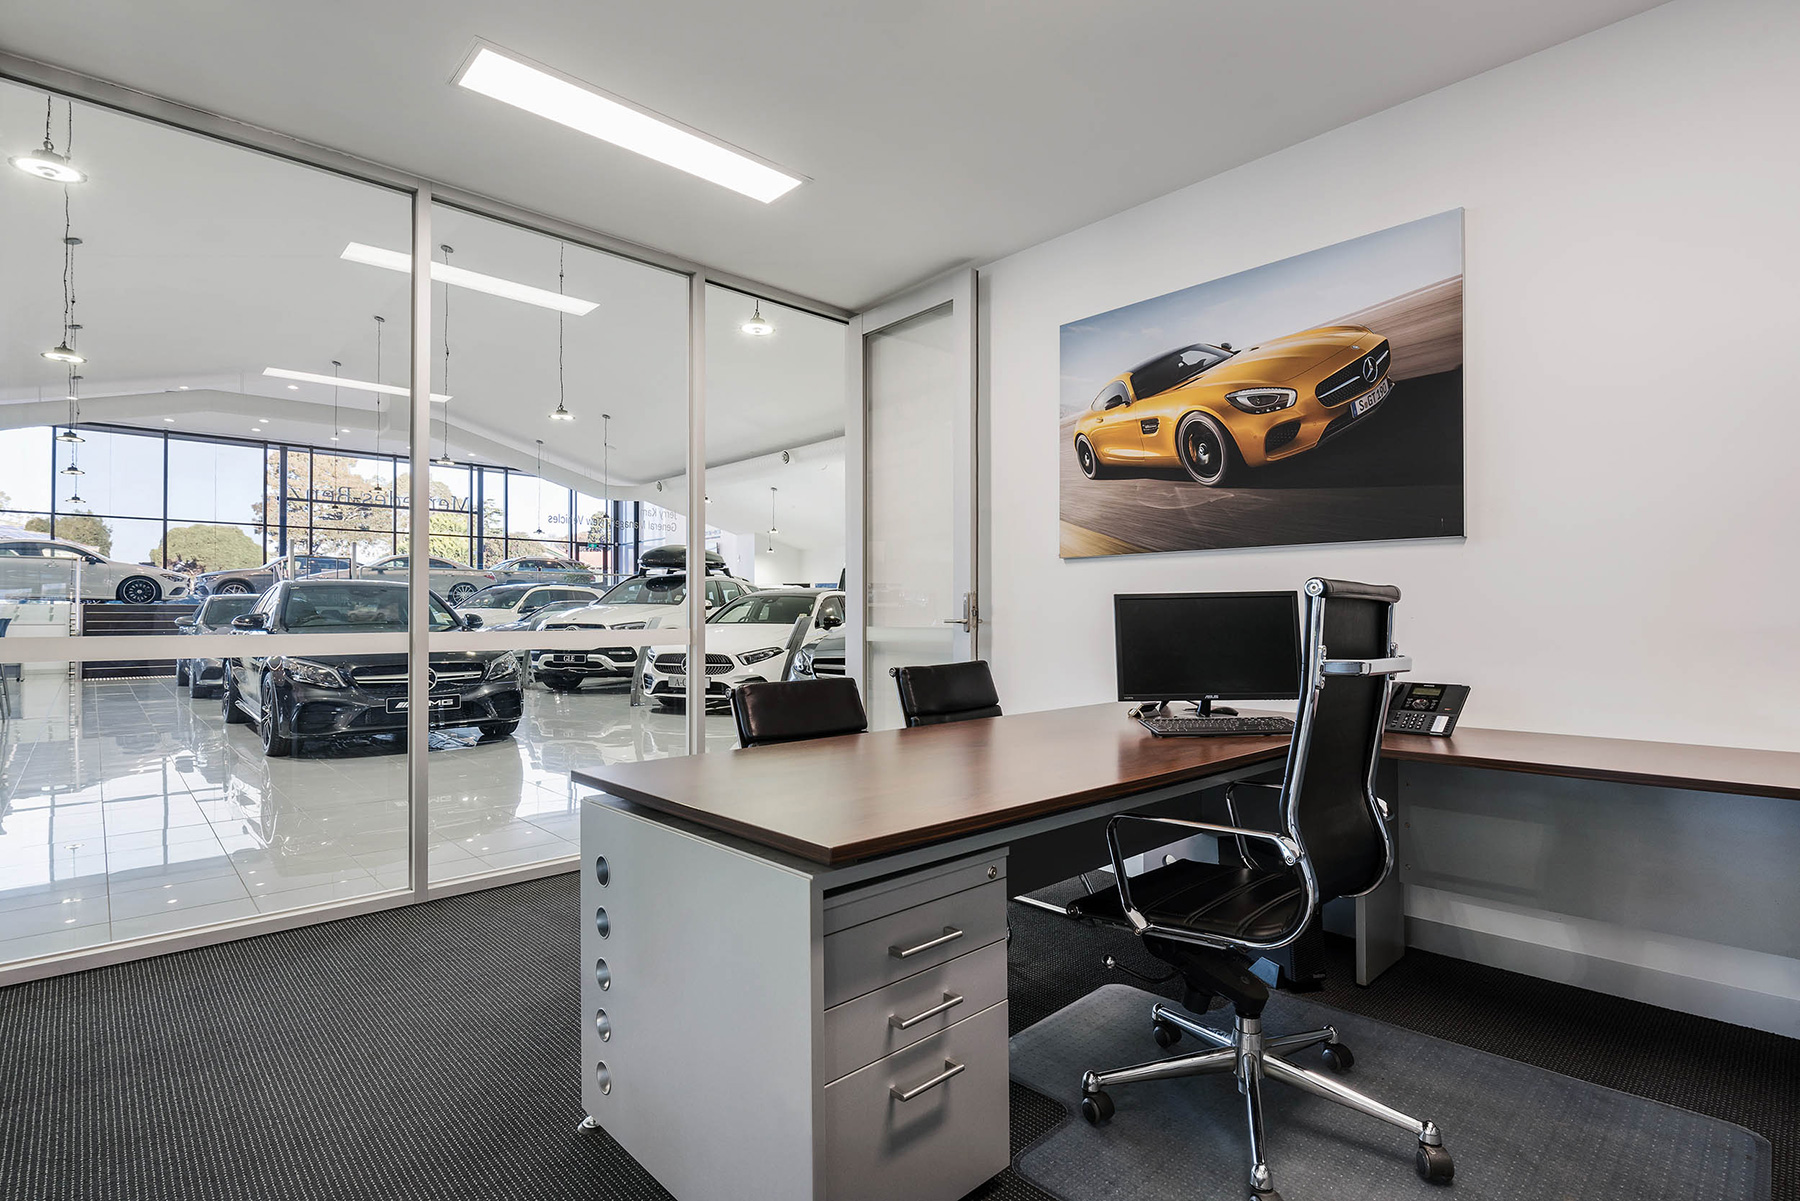 c. kairouz architects commercial architecture interior design for car dealership office